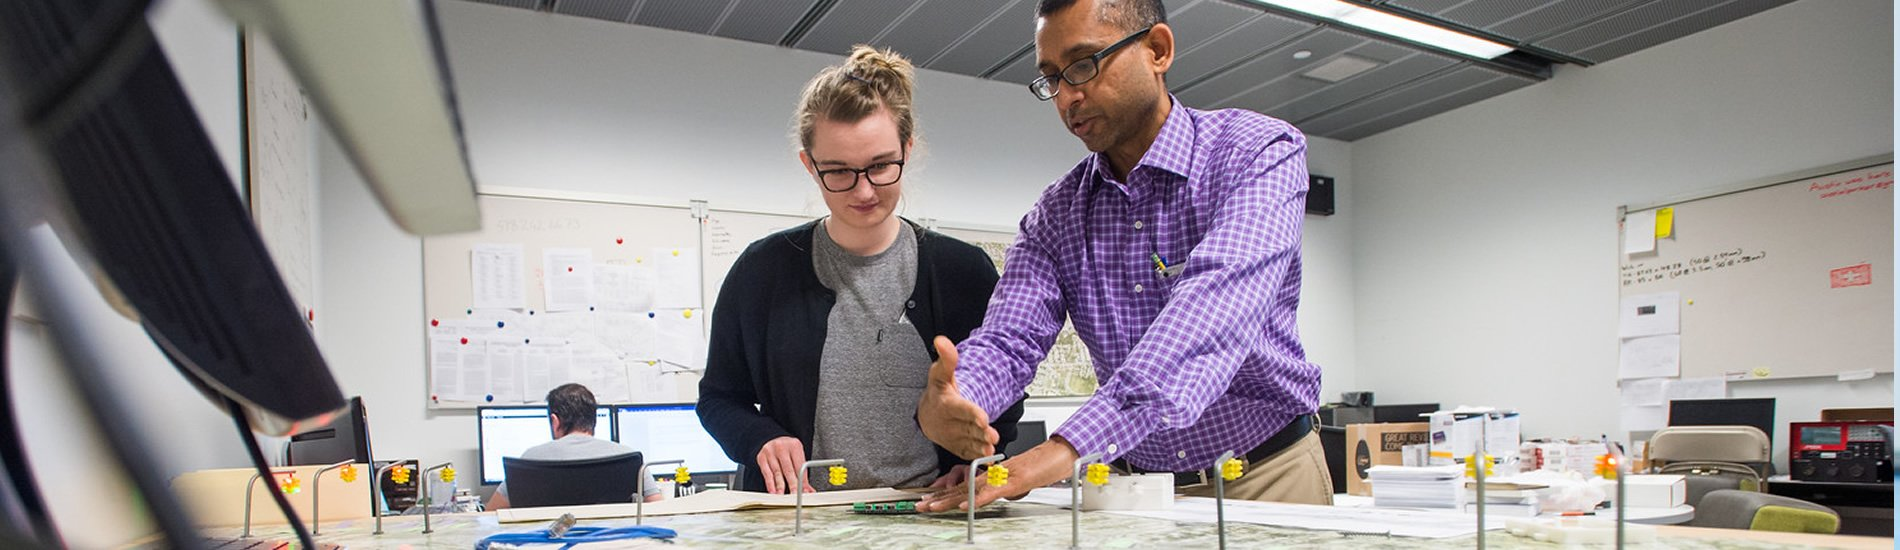 Student working with professor on traffic model